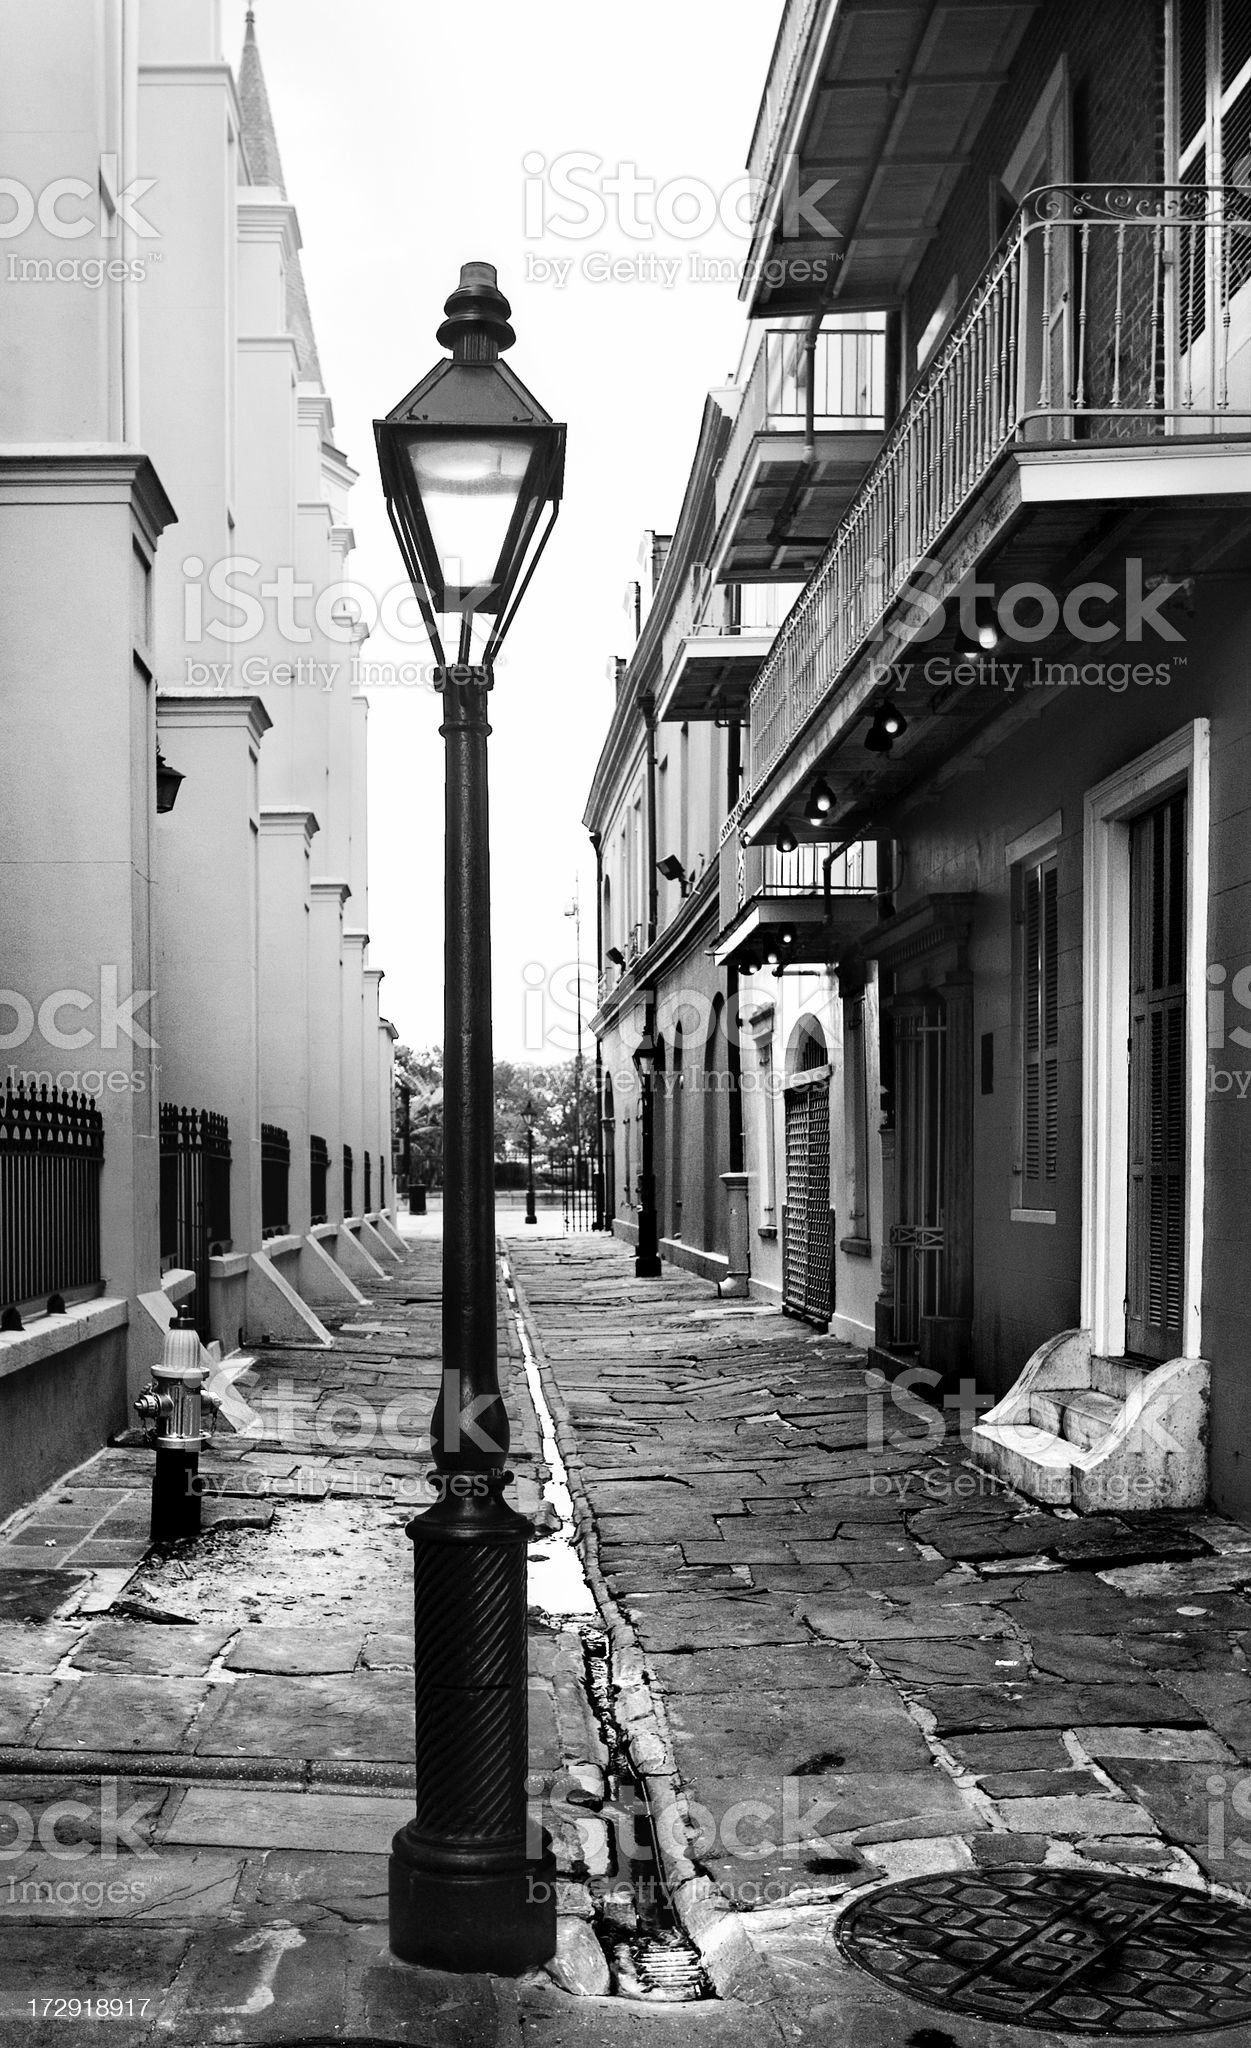 Lamp-post in Alley royalty-free stock photo